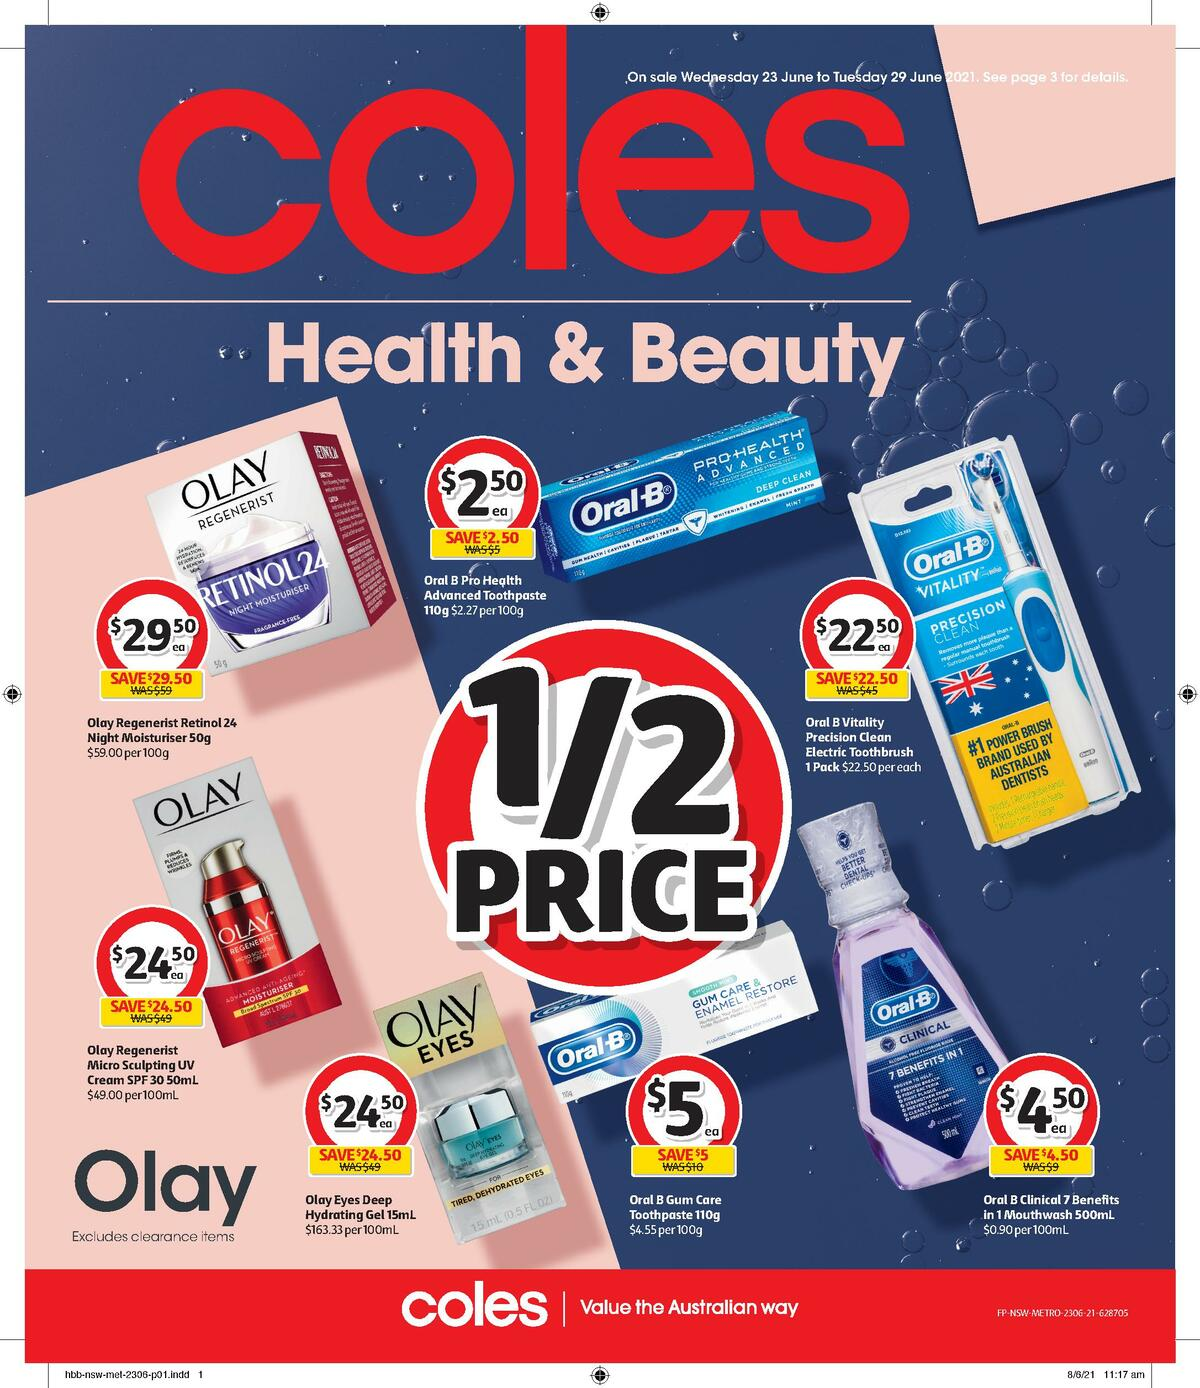 Coles Health & Beauty Catalogues from June 23